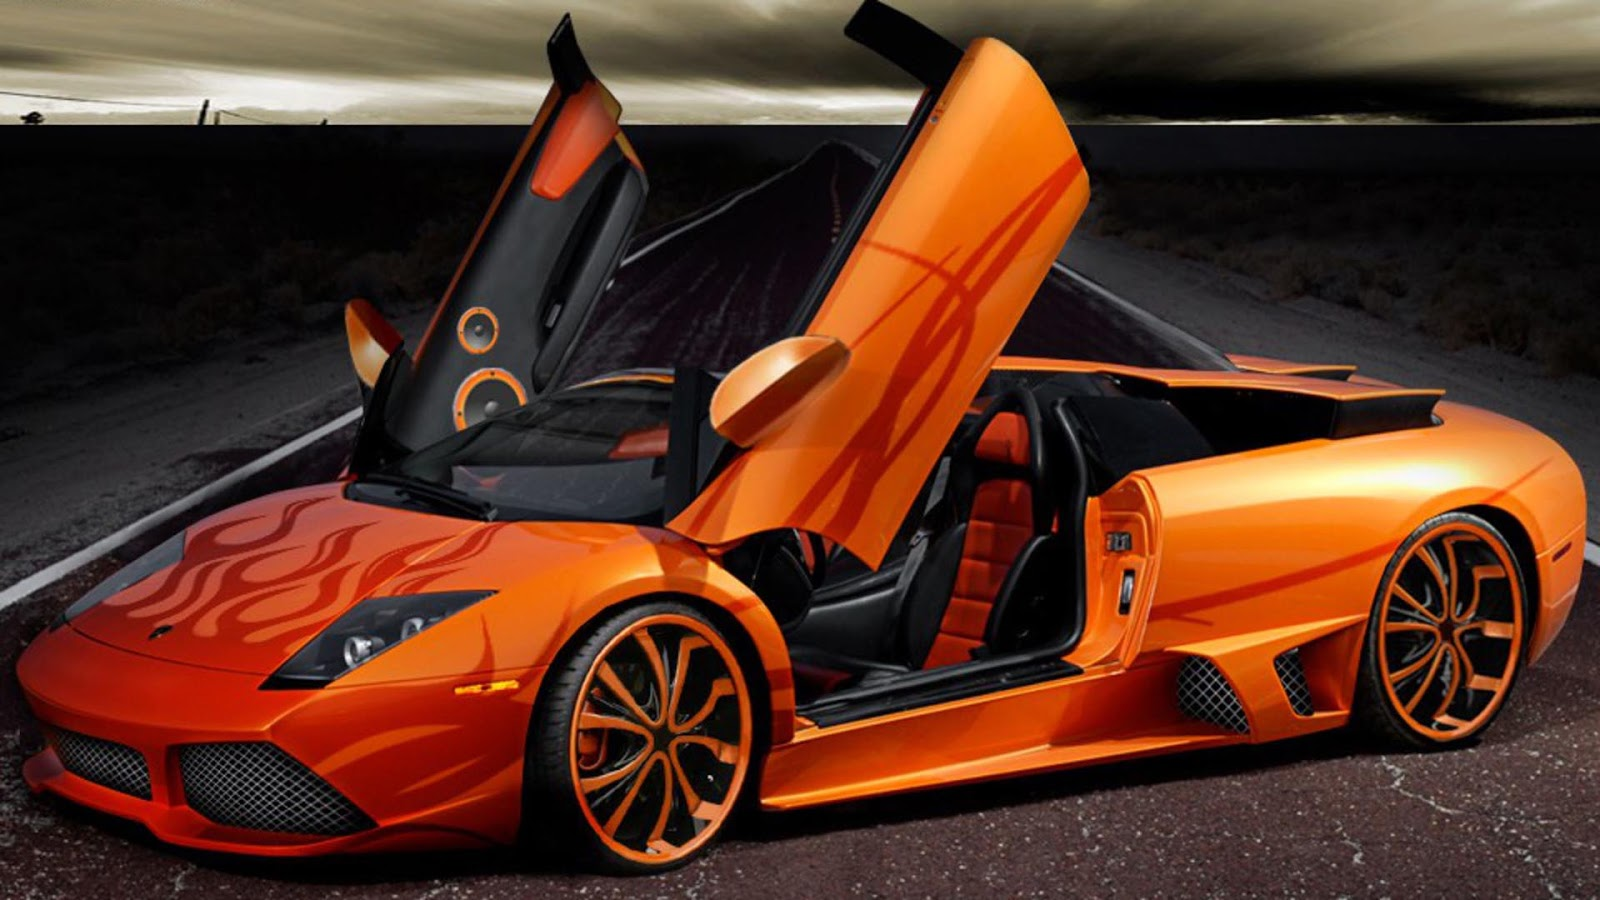 latest lamborghini cars price list january 2016 bagibegi com. Black Bedroom Furniture Sets. Home Design Ideas